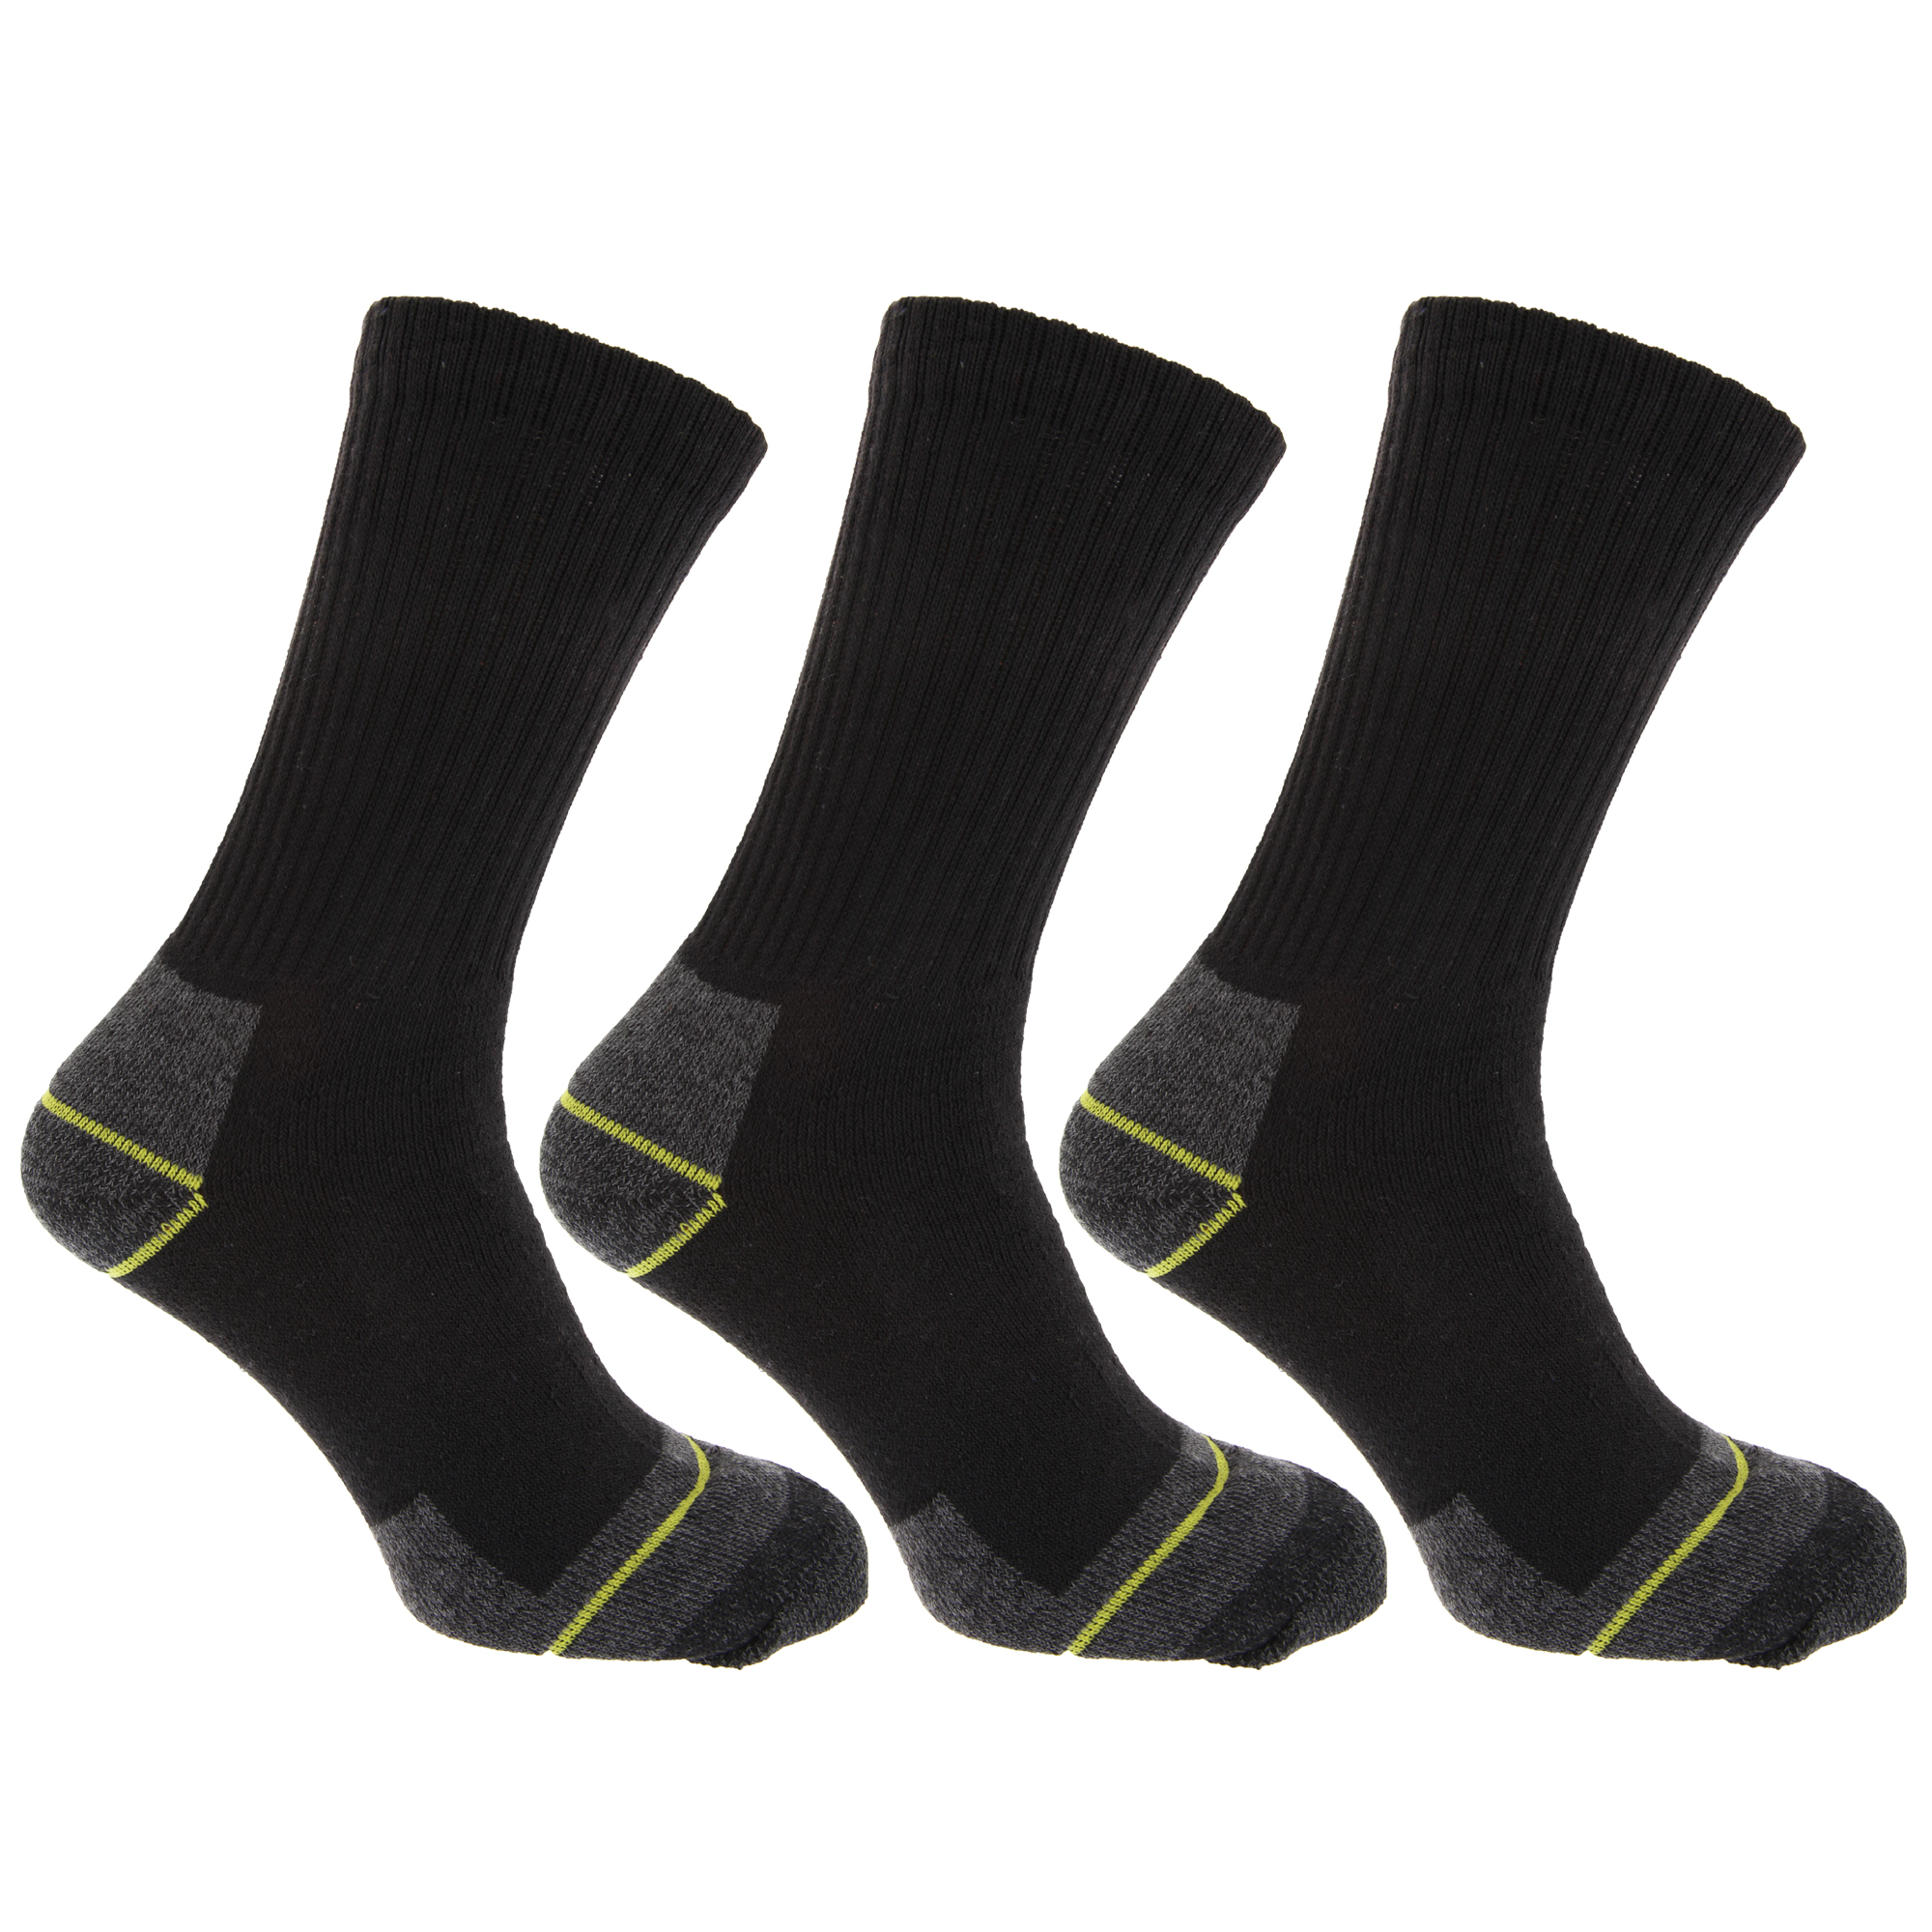 Large Size Mens Cushioned Socks 109